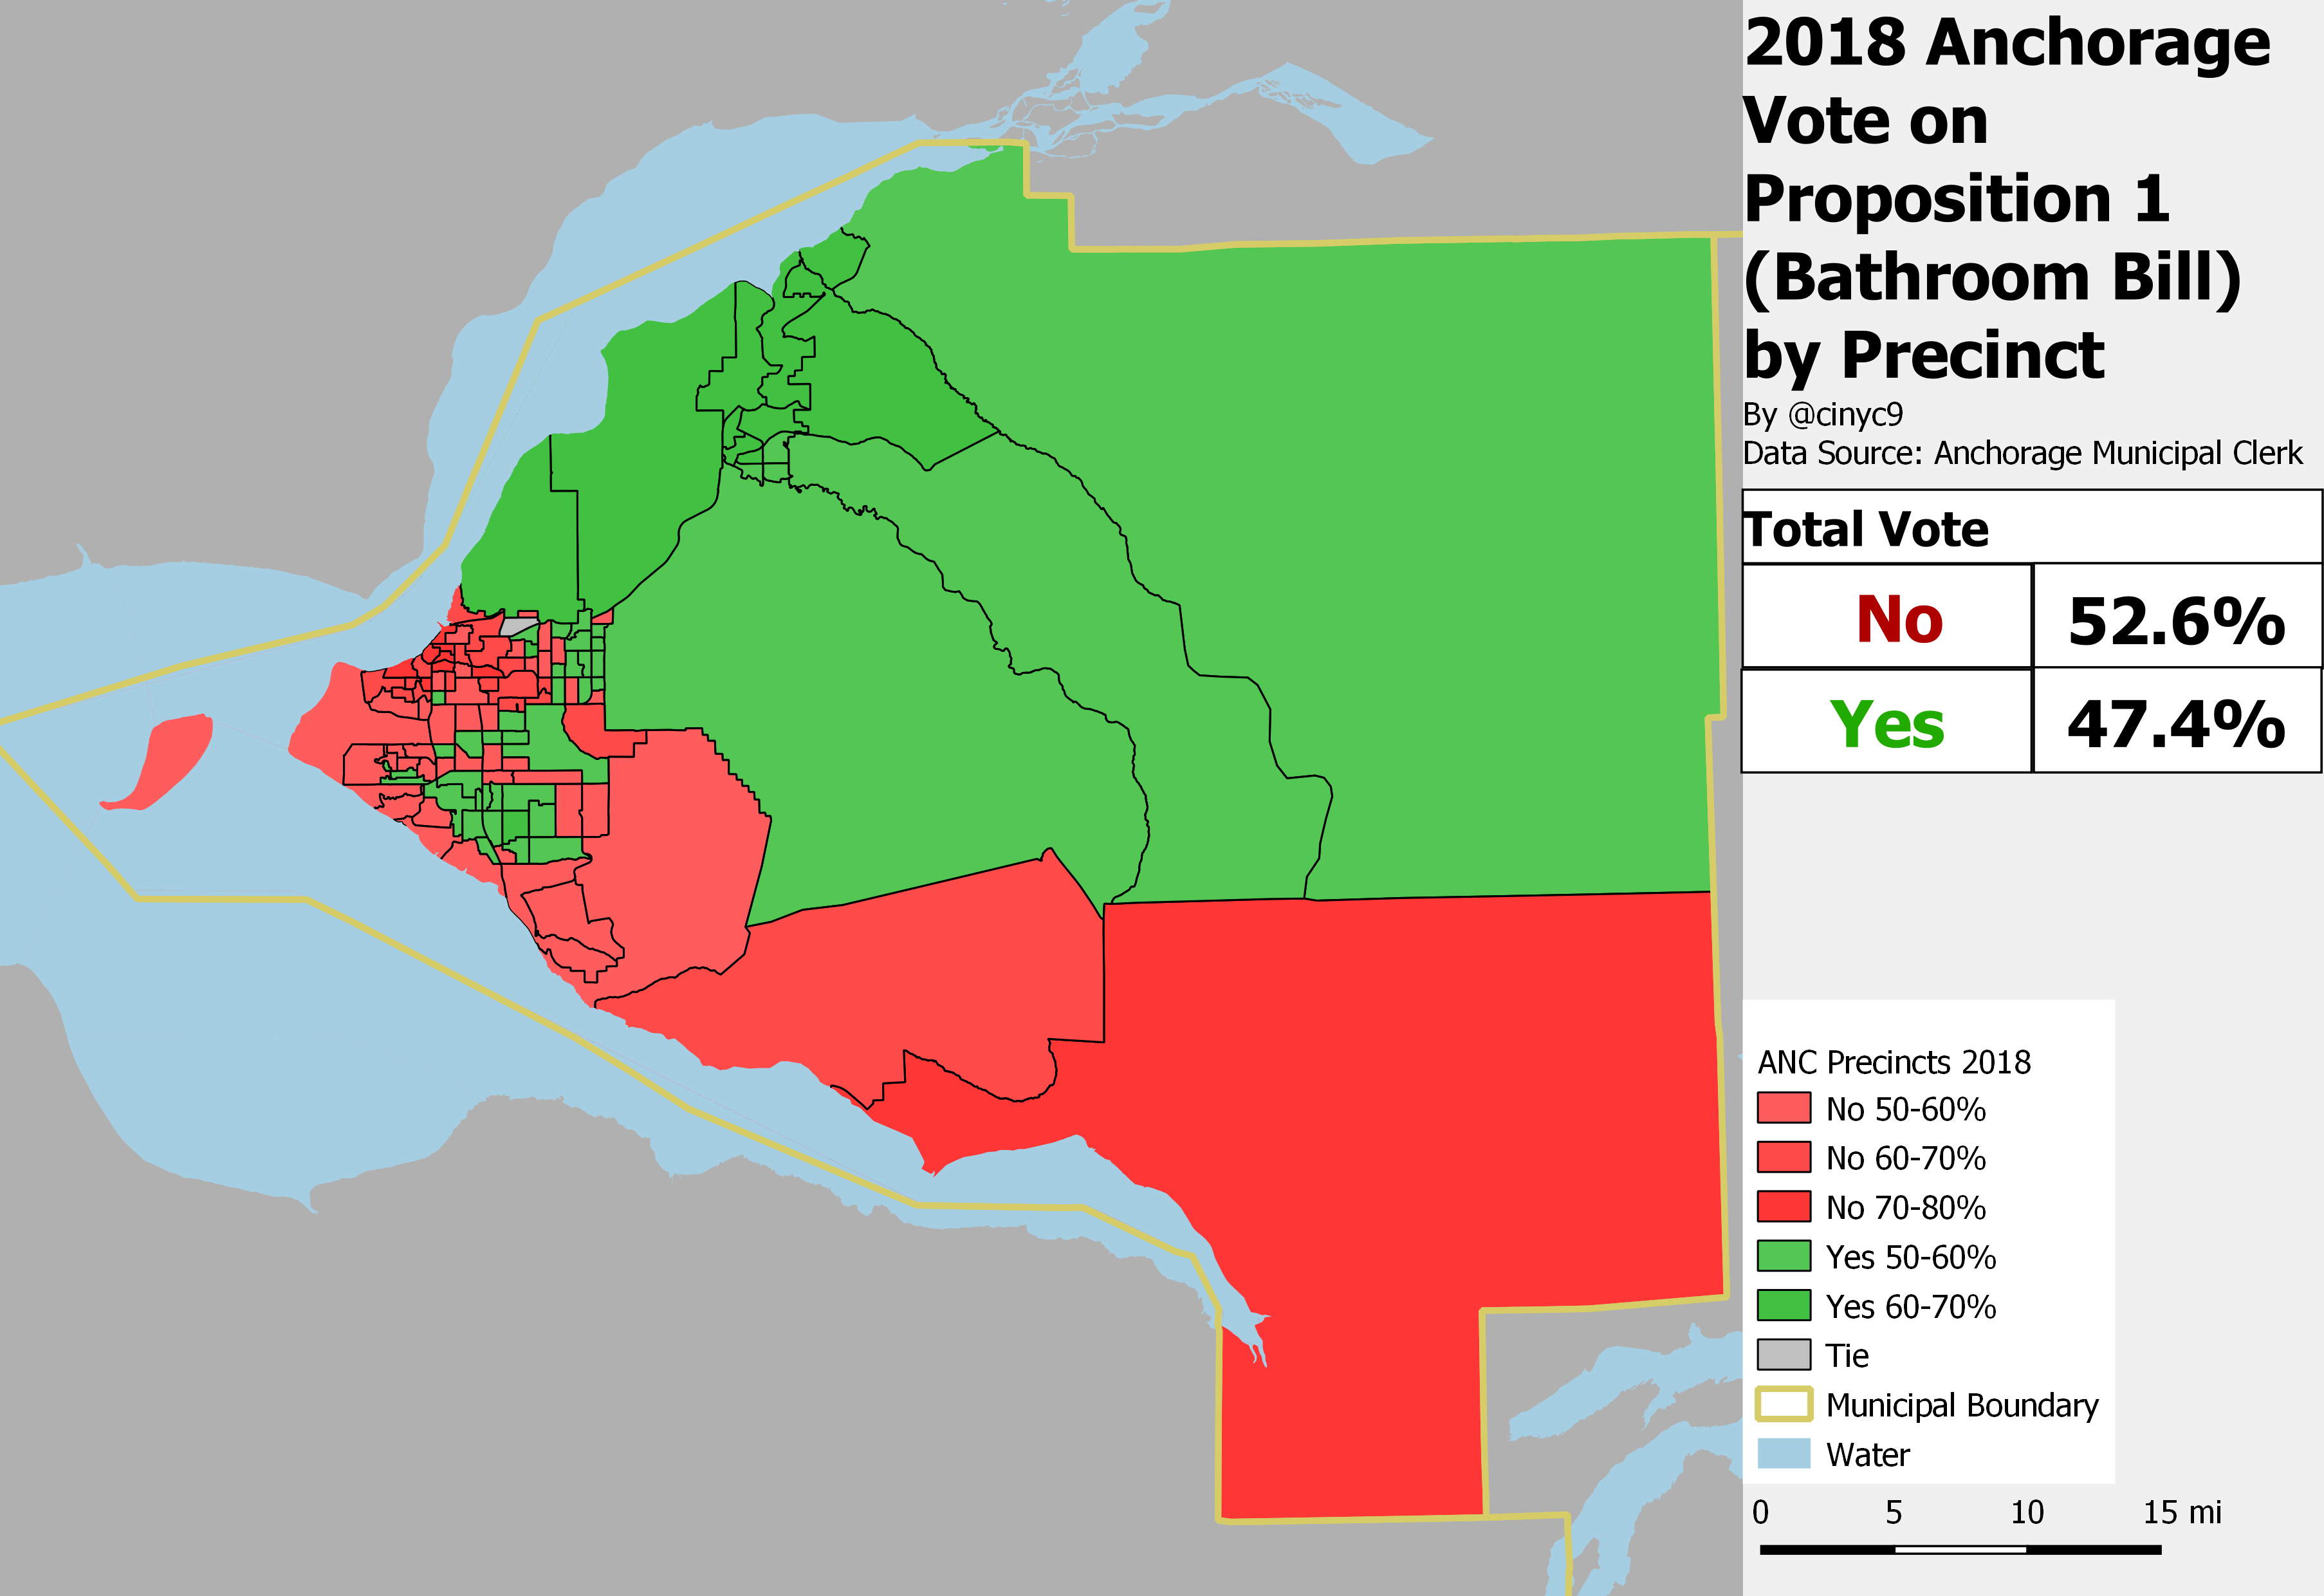 Anchorage Prop 1 Bathroom Bill